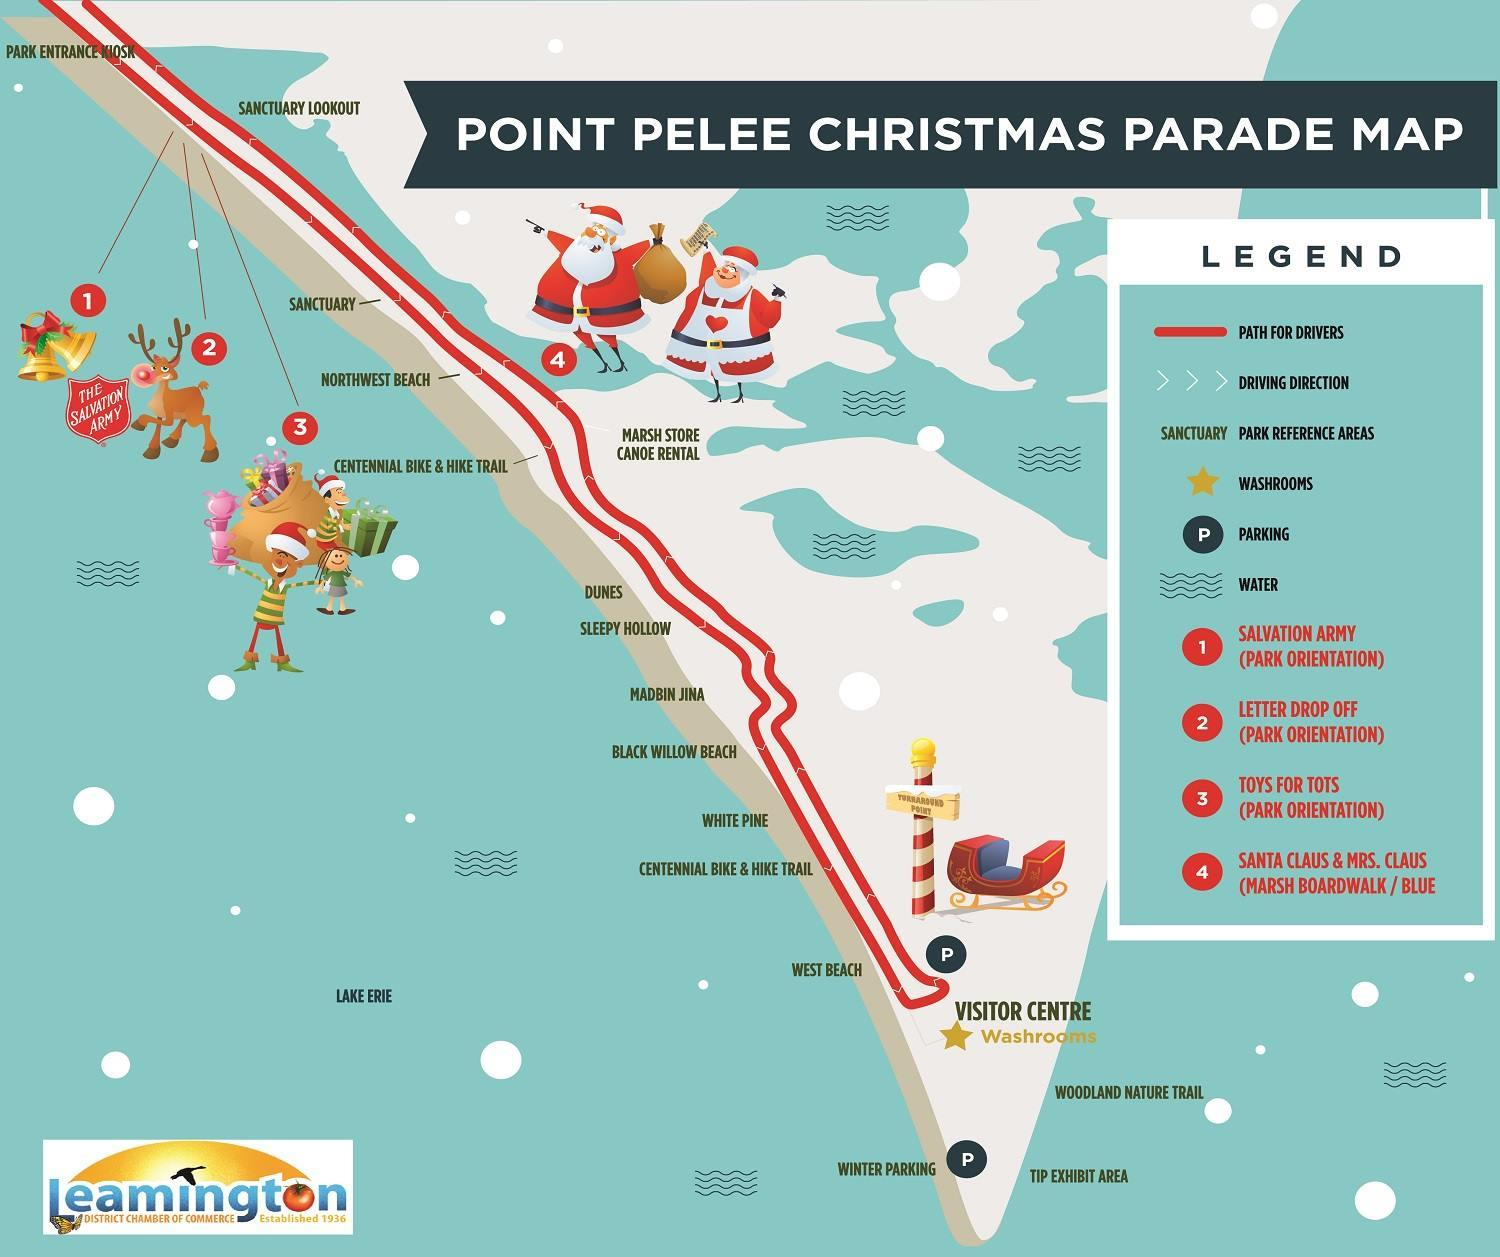 am800-news-santa-claus-parade-map-leamington-november-27-2020